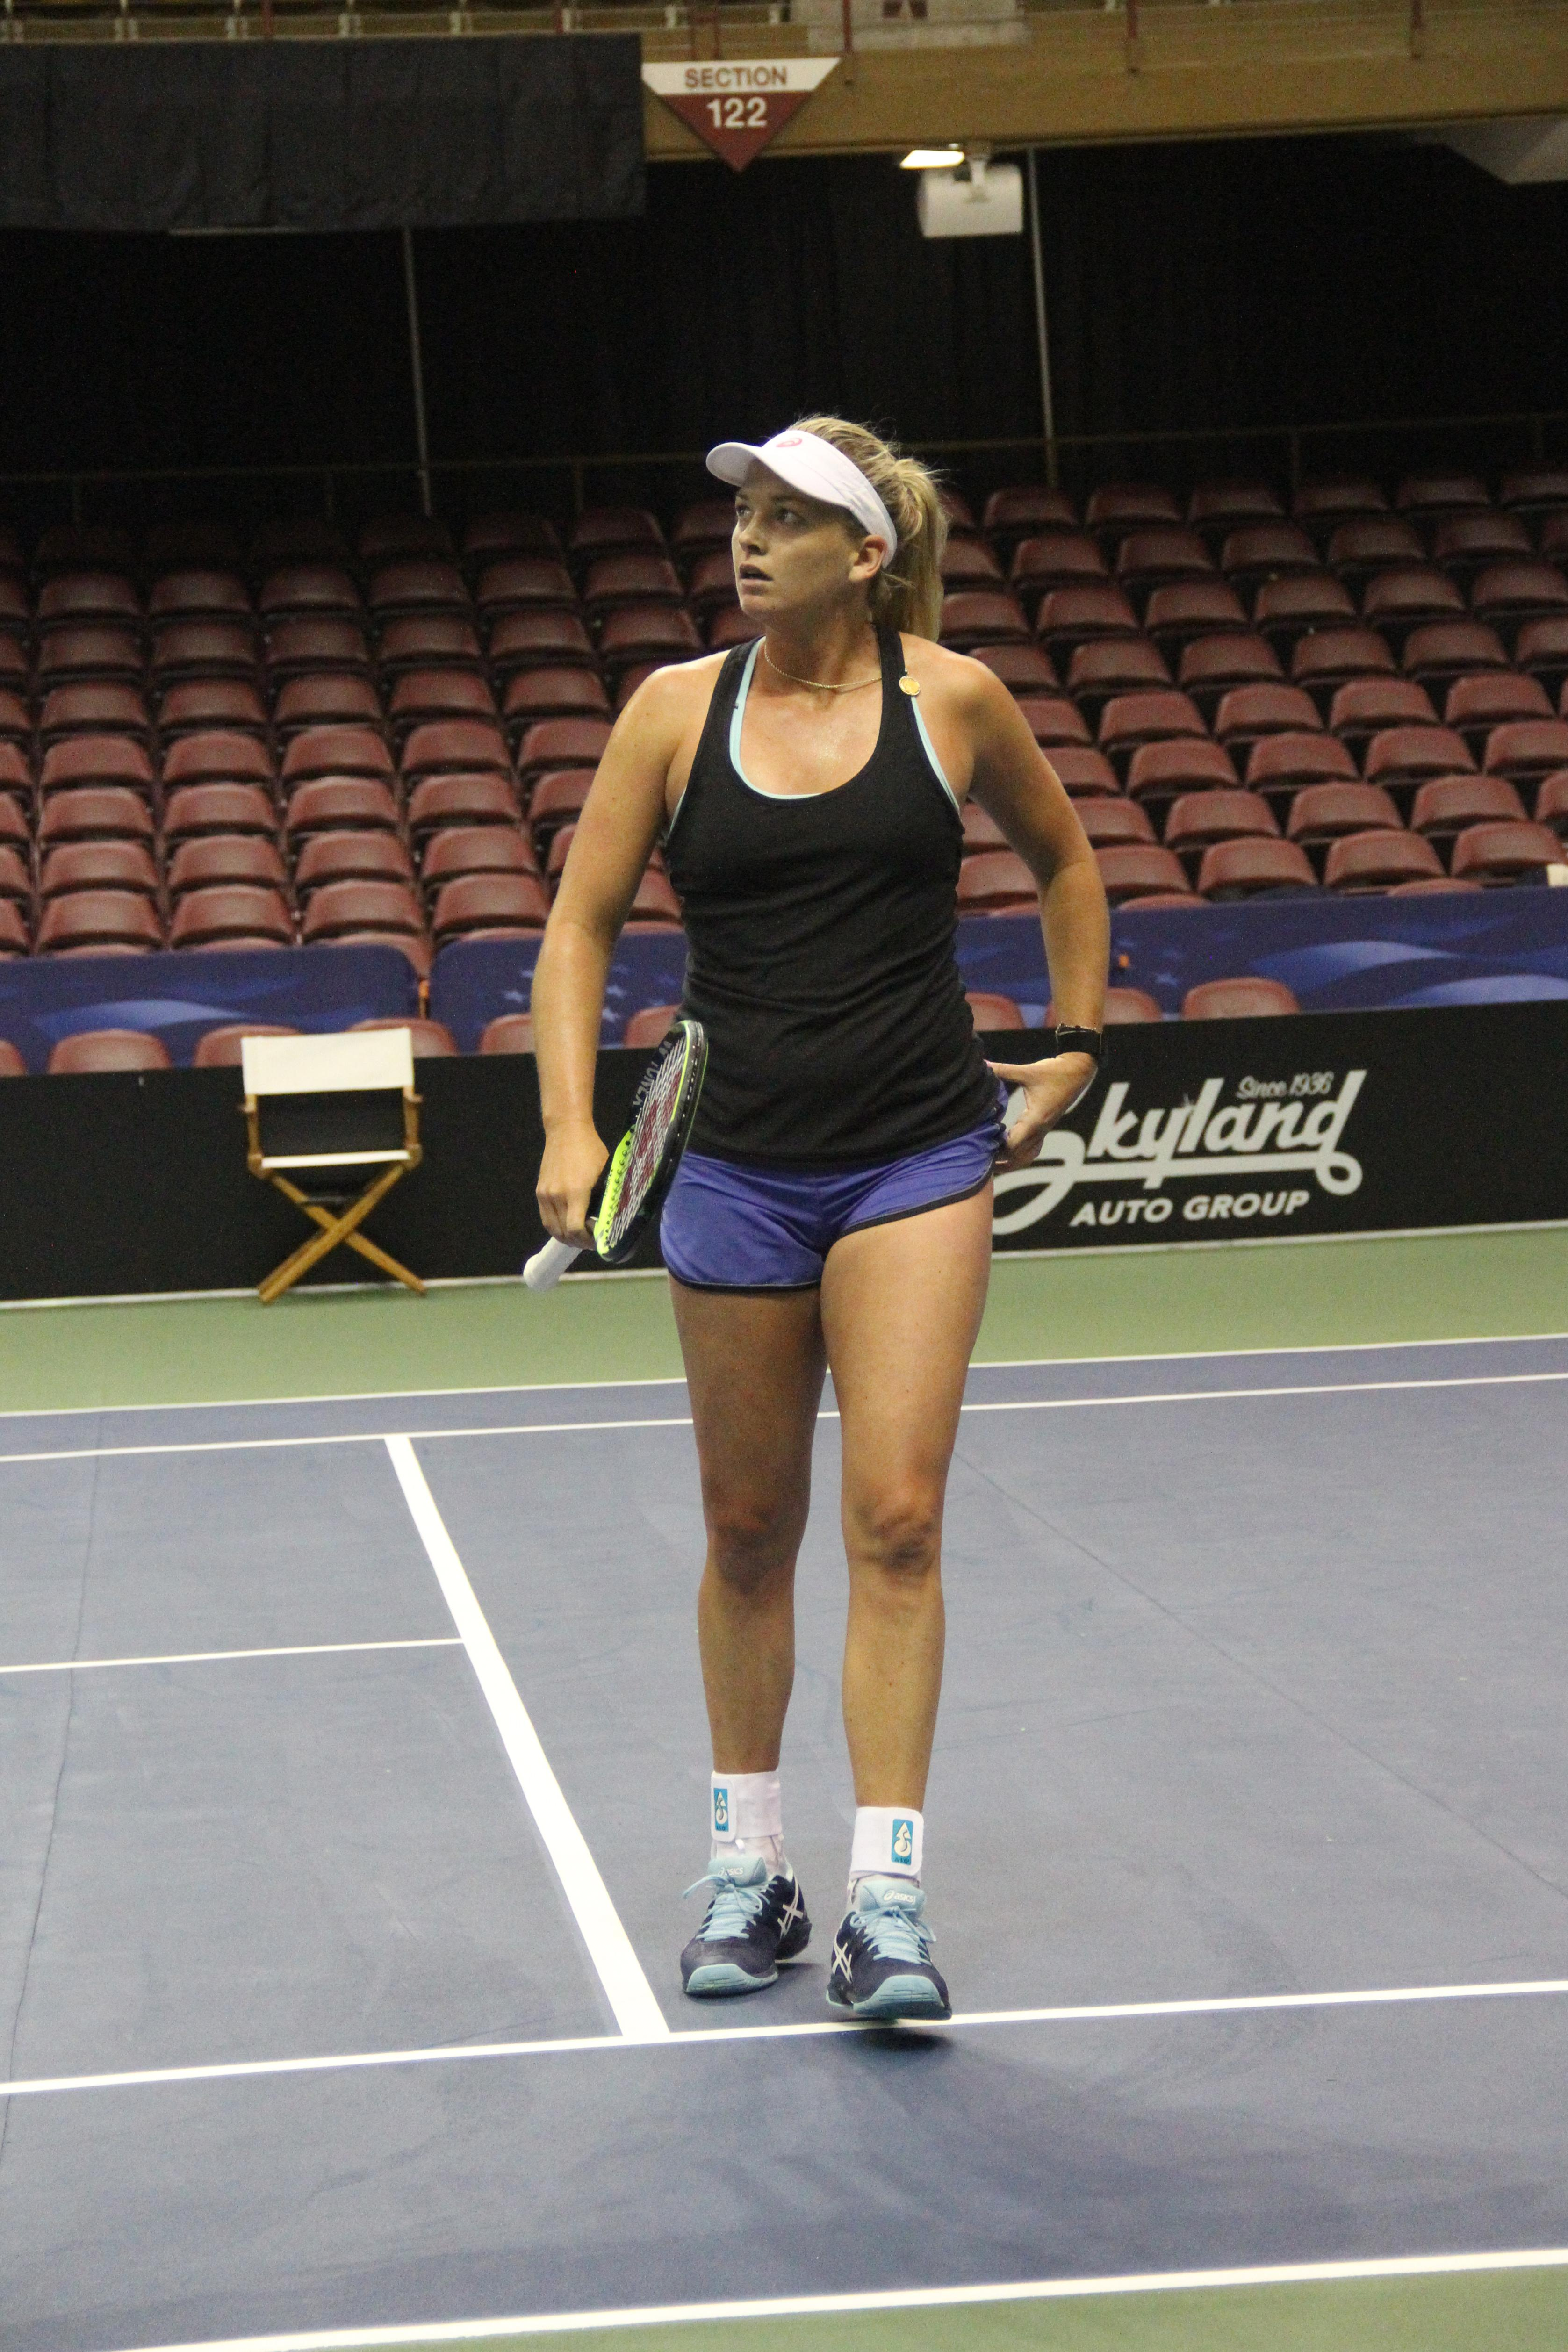 <p>CoCo Vandeweghe practices at the US Cellular Center on Feb. 7, 2018, ahead of the Fed Cup. (Photo credit: WLOS Staff)</p>